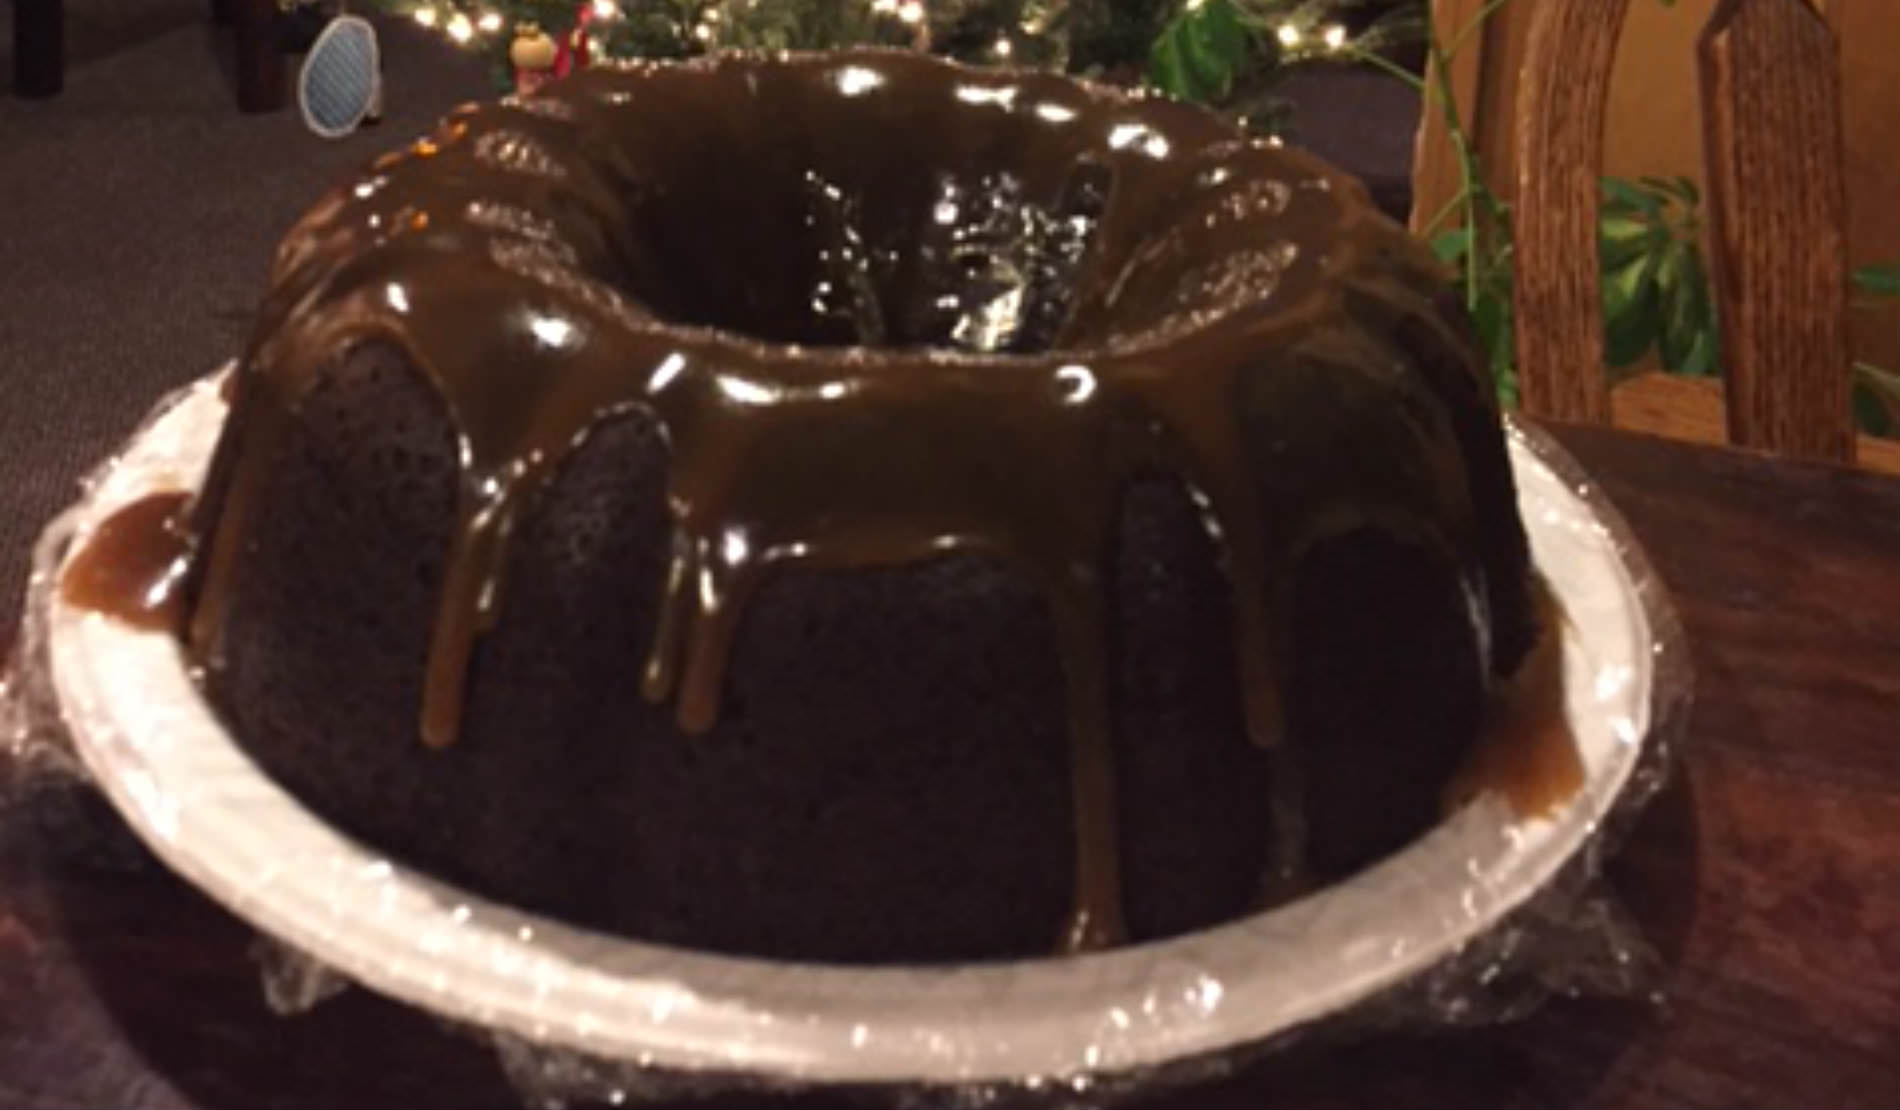 A Guinness Stout chocolate cake smothered in rich, brown chocolate incing on a white plate.